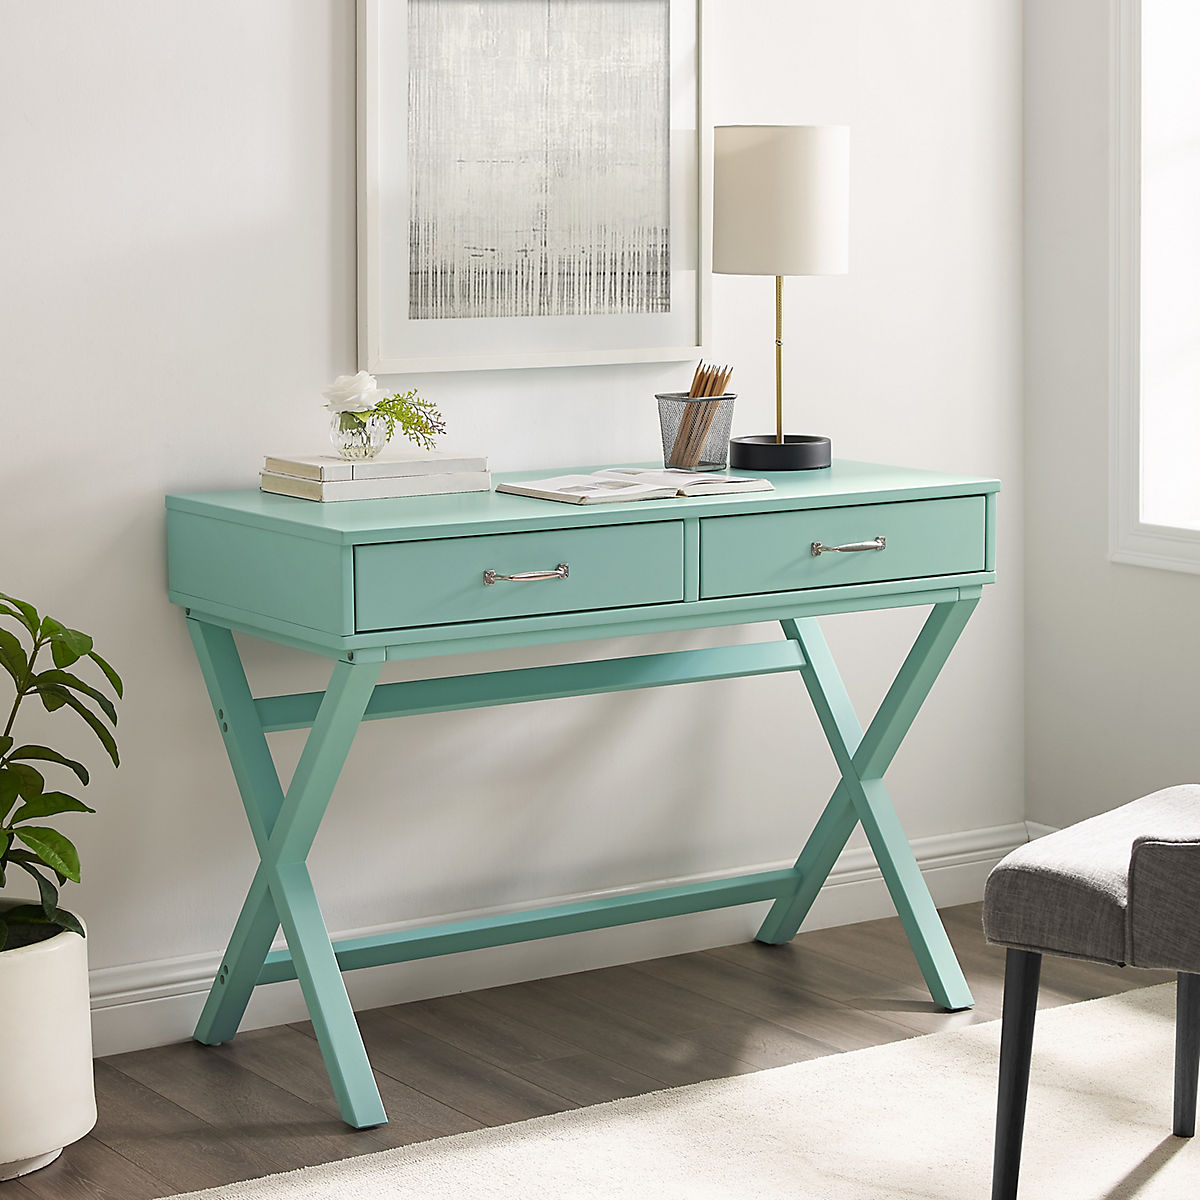 The 5 Best Desks for College Students at Star Furniture